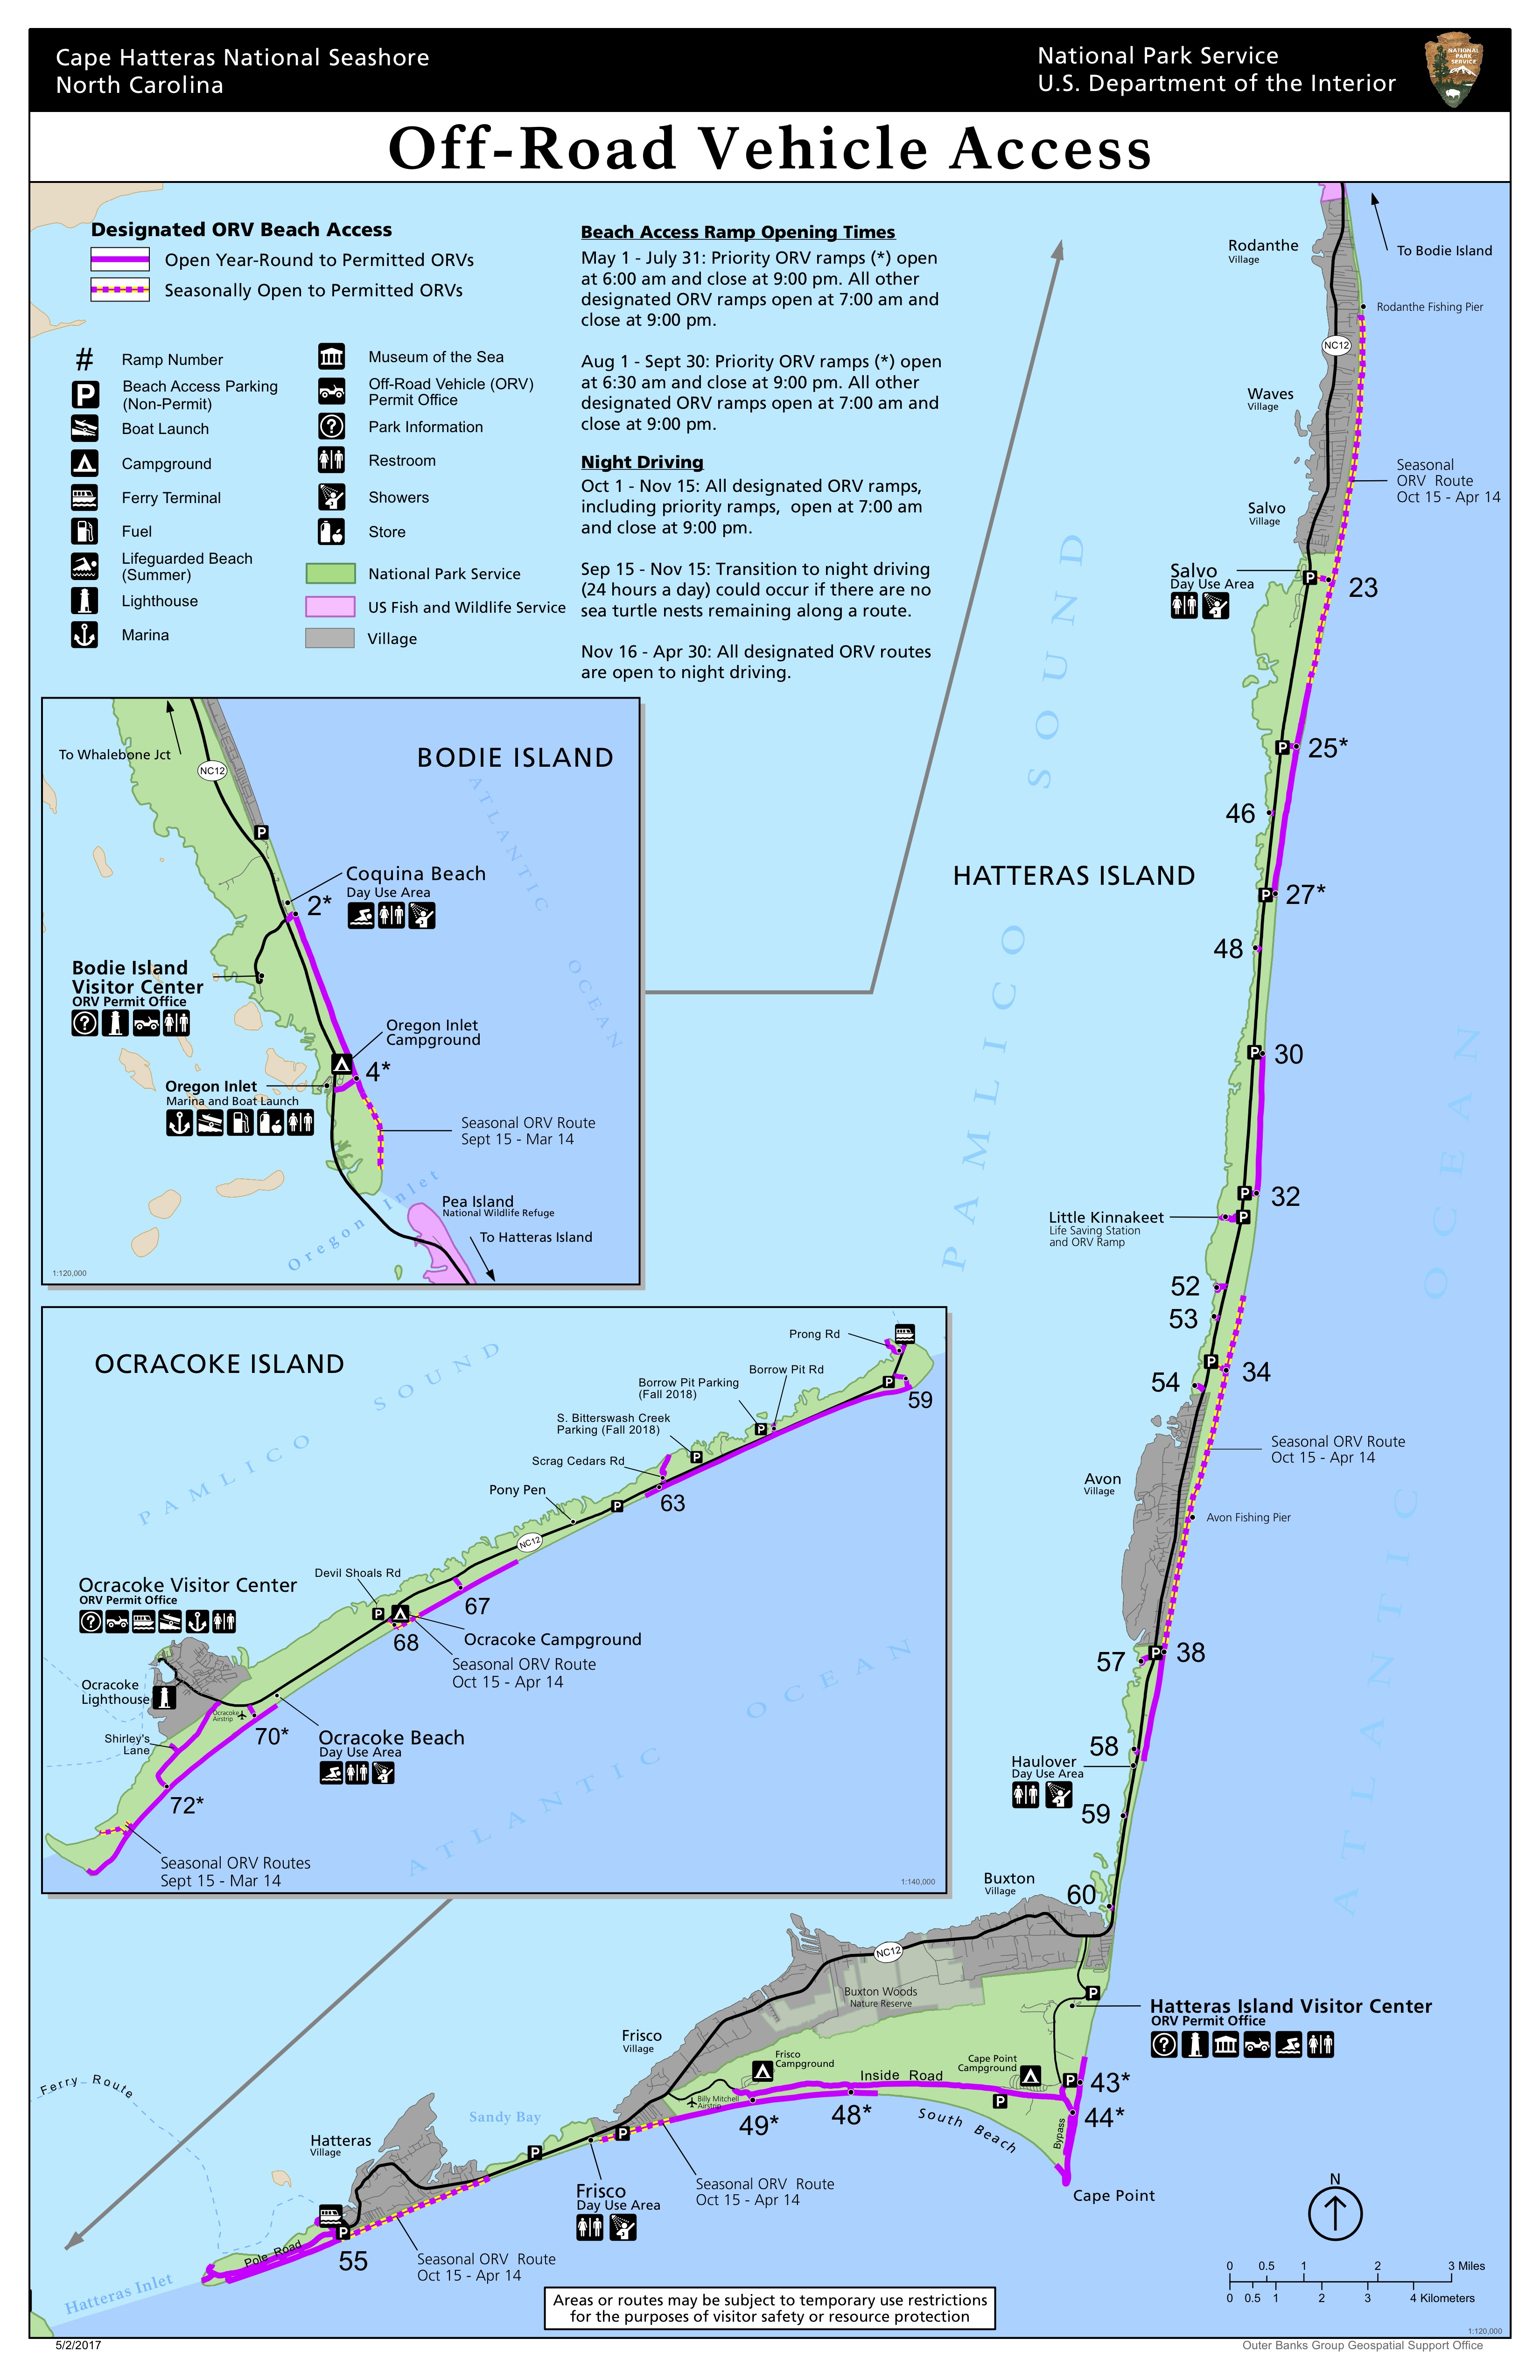 Cape Hatteras National Seashore Off-Road Vehicle Map